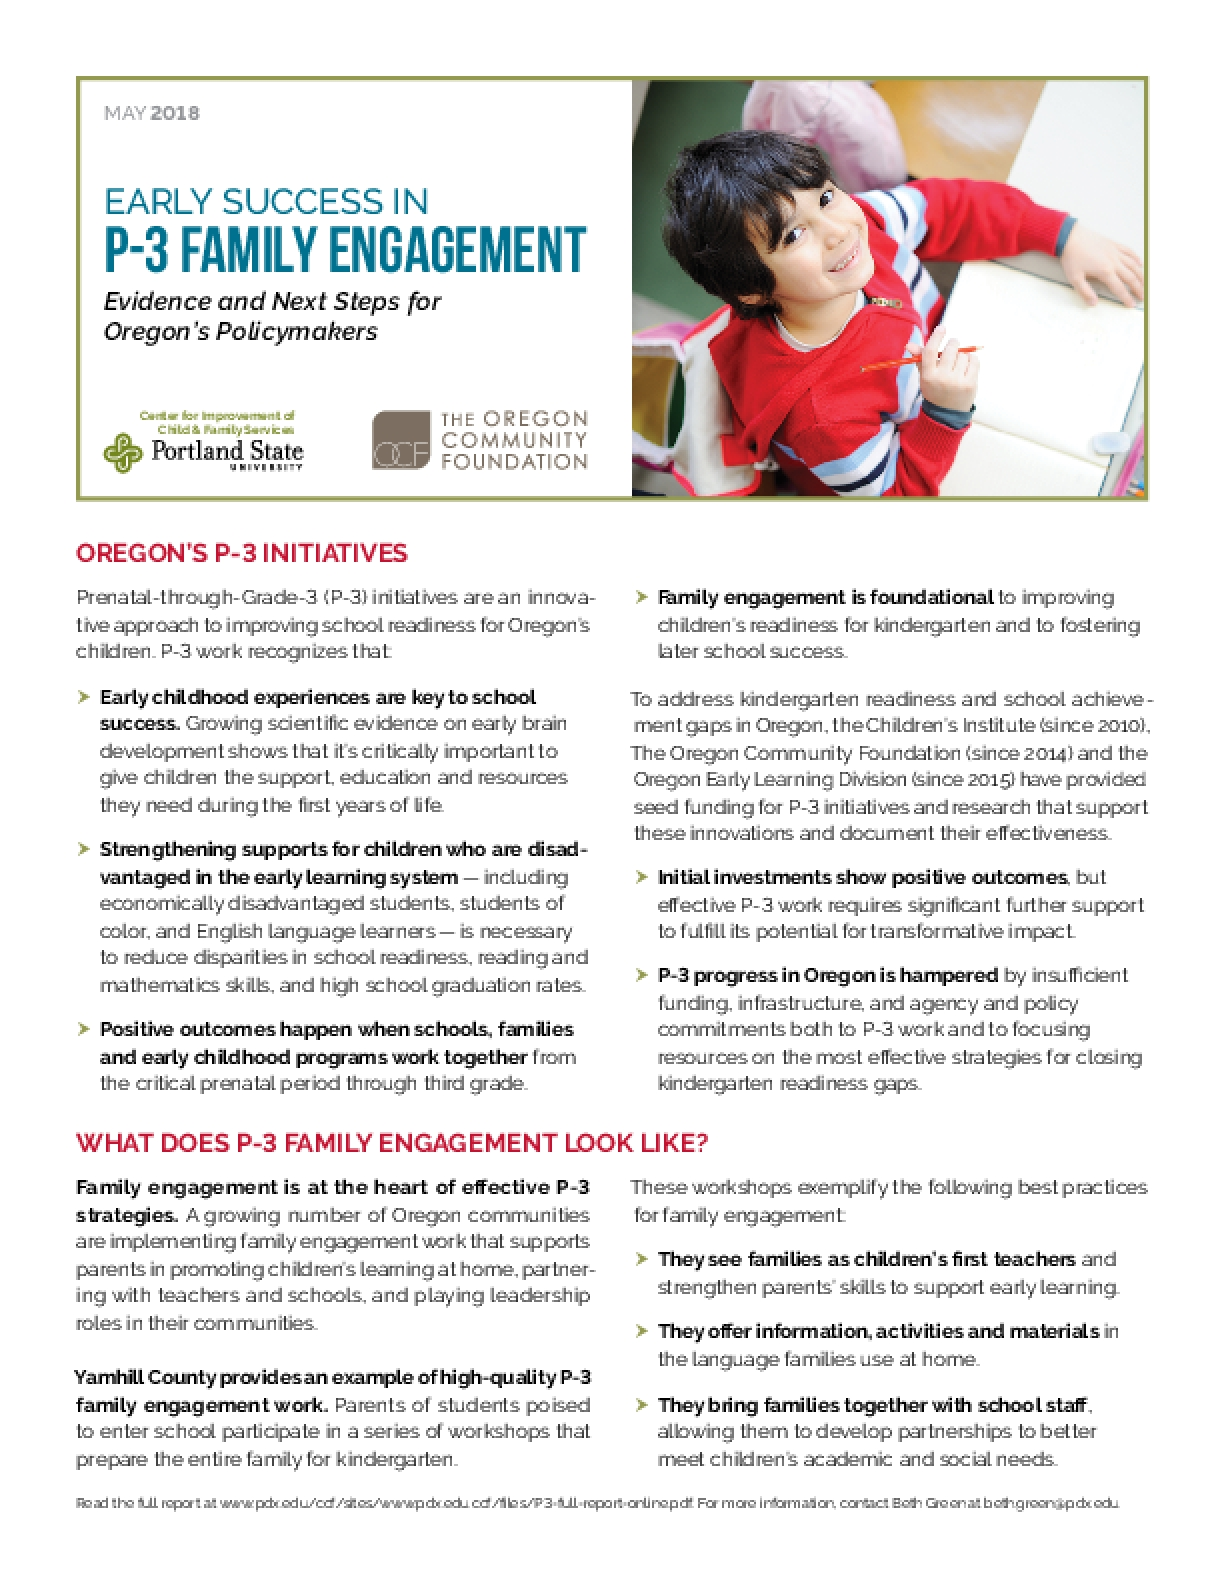 Early Success in P-3 Family Engagement: Evidence and Next Steps for Oregon's Policymakers